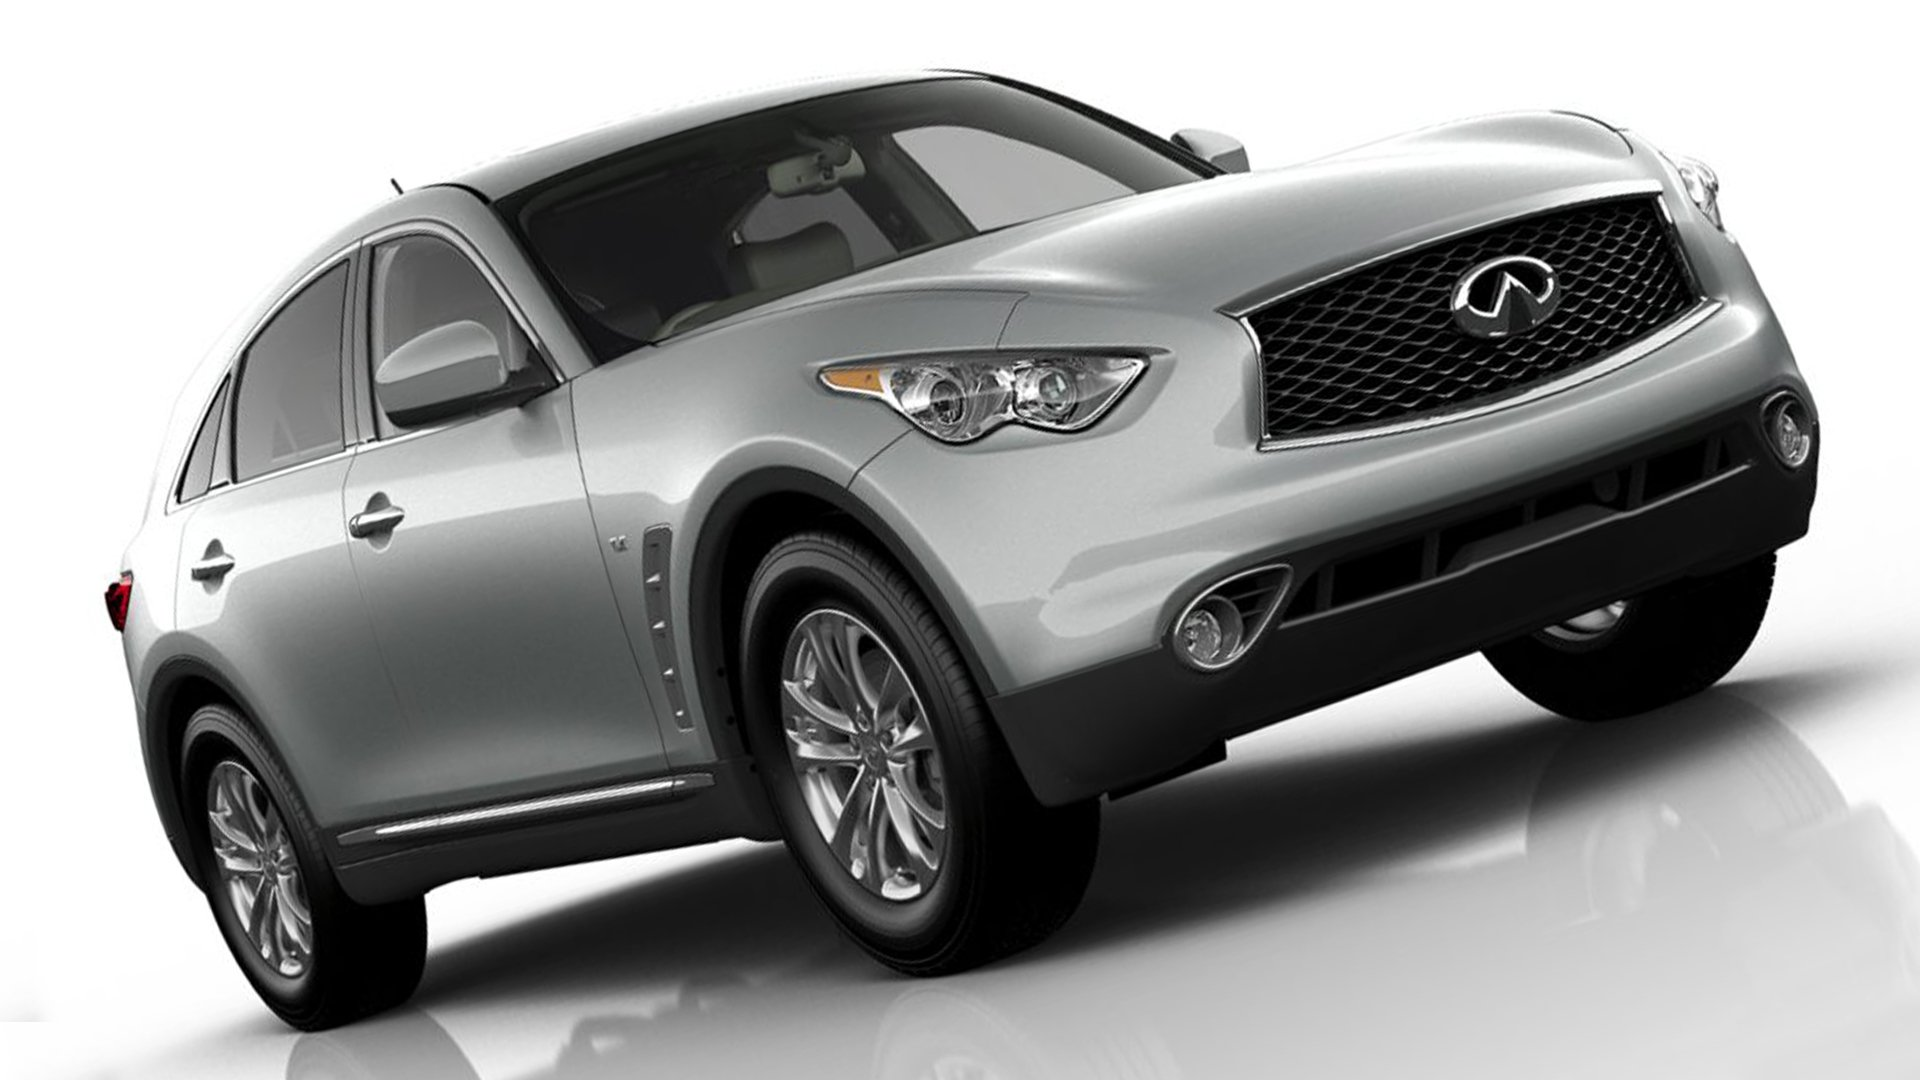 New 2019 Infiniti QX70 Exterior Changes